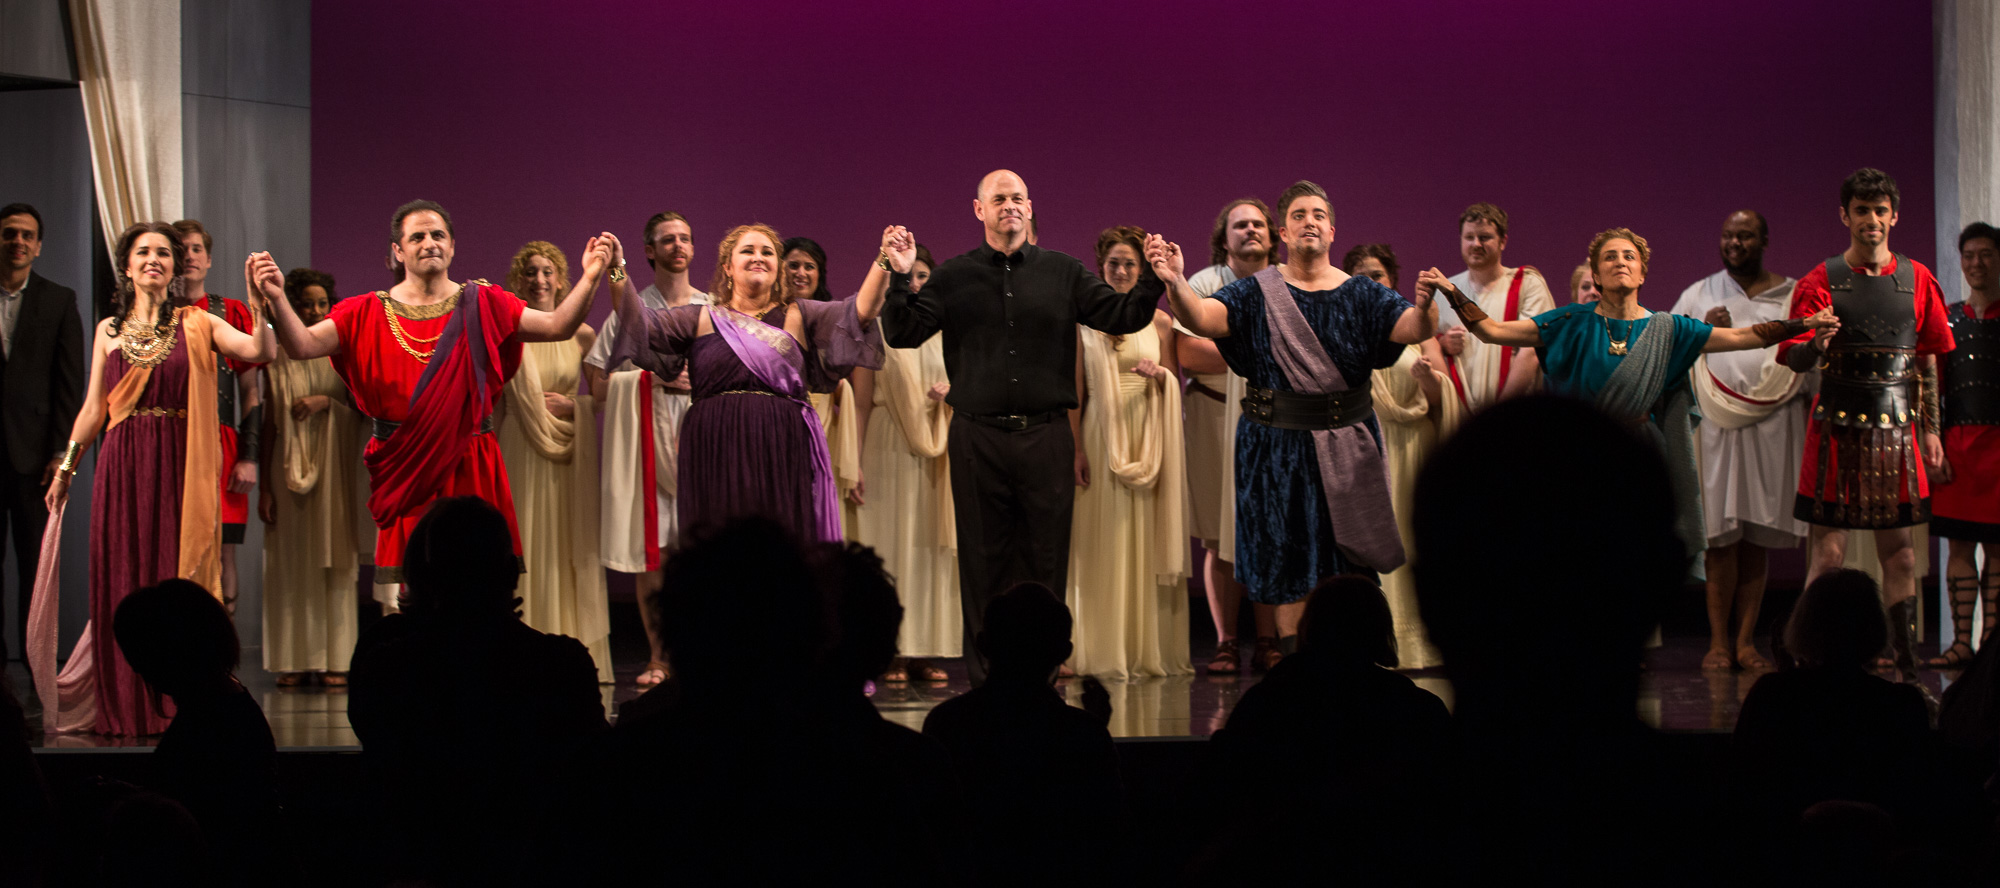 Rave reviews for When in Rome!